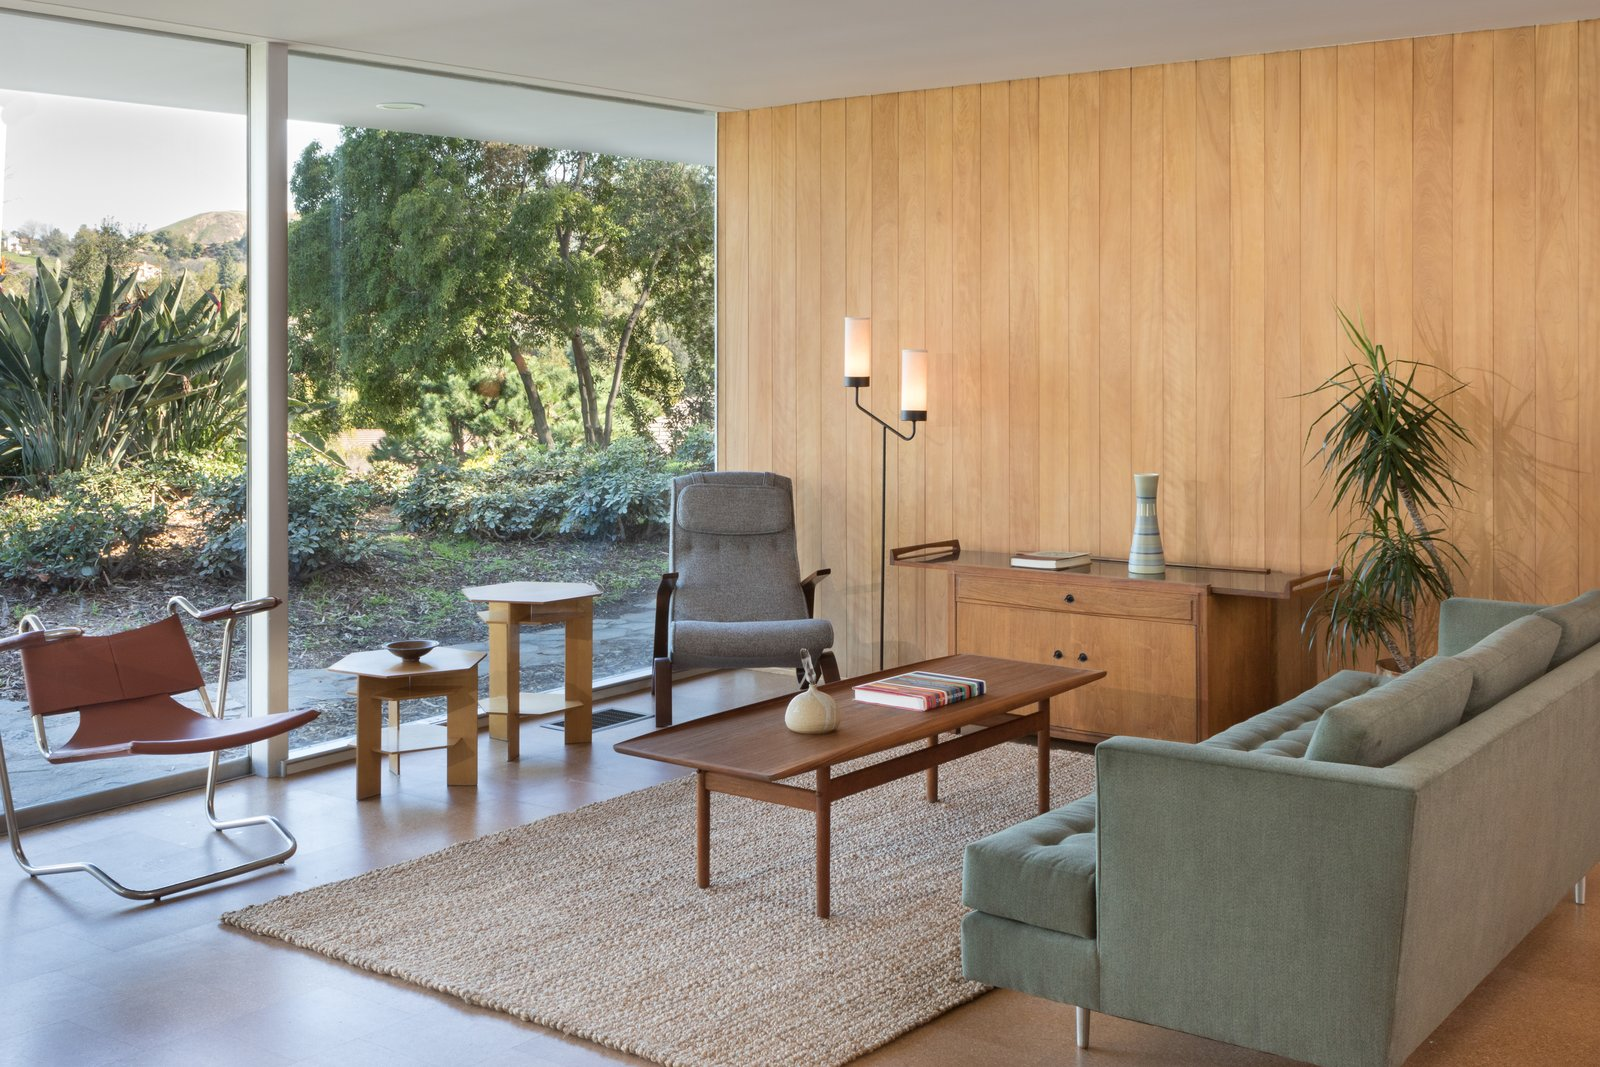 In the mid-fifties, modern residential architecture was suspect in the Eastern San Gabriel Valley. The Roberts family requested a ranch house, but Neutra steered his clients towards his vision. Mrs. Roberts wanted a low plaster ceiling throughout the home, which Neutra refused, choosing tongue-and-groove Douglas fir boards instead. He compromised with a plaster ceiling in the living room, pictured above. Tagged: Living Room, Sofa, and Medium Hardwood Floor.  Photo 3 of 9 in Nearly Slated For Destruction, a Restored Neutra in West Covina Asks $1.8M